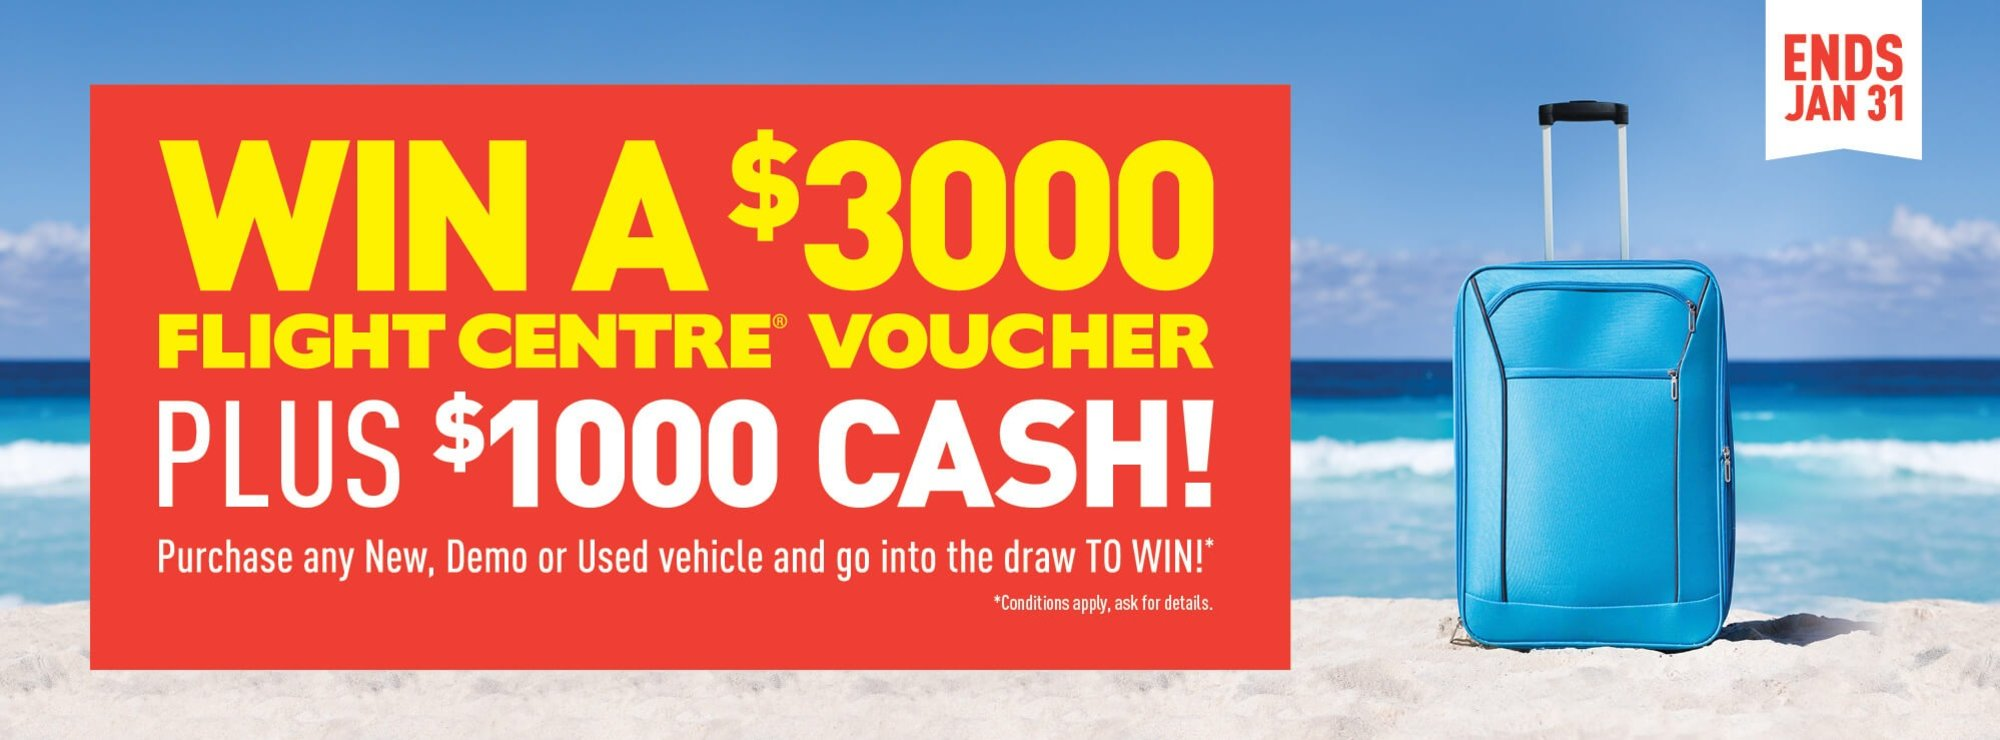 Win $3000 Flight Centre Voucher